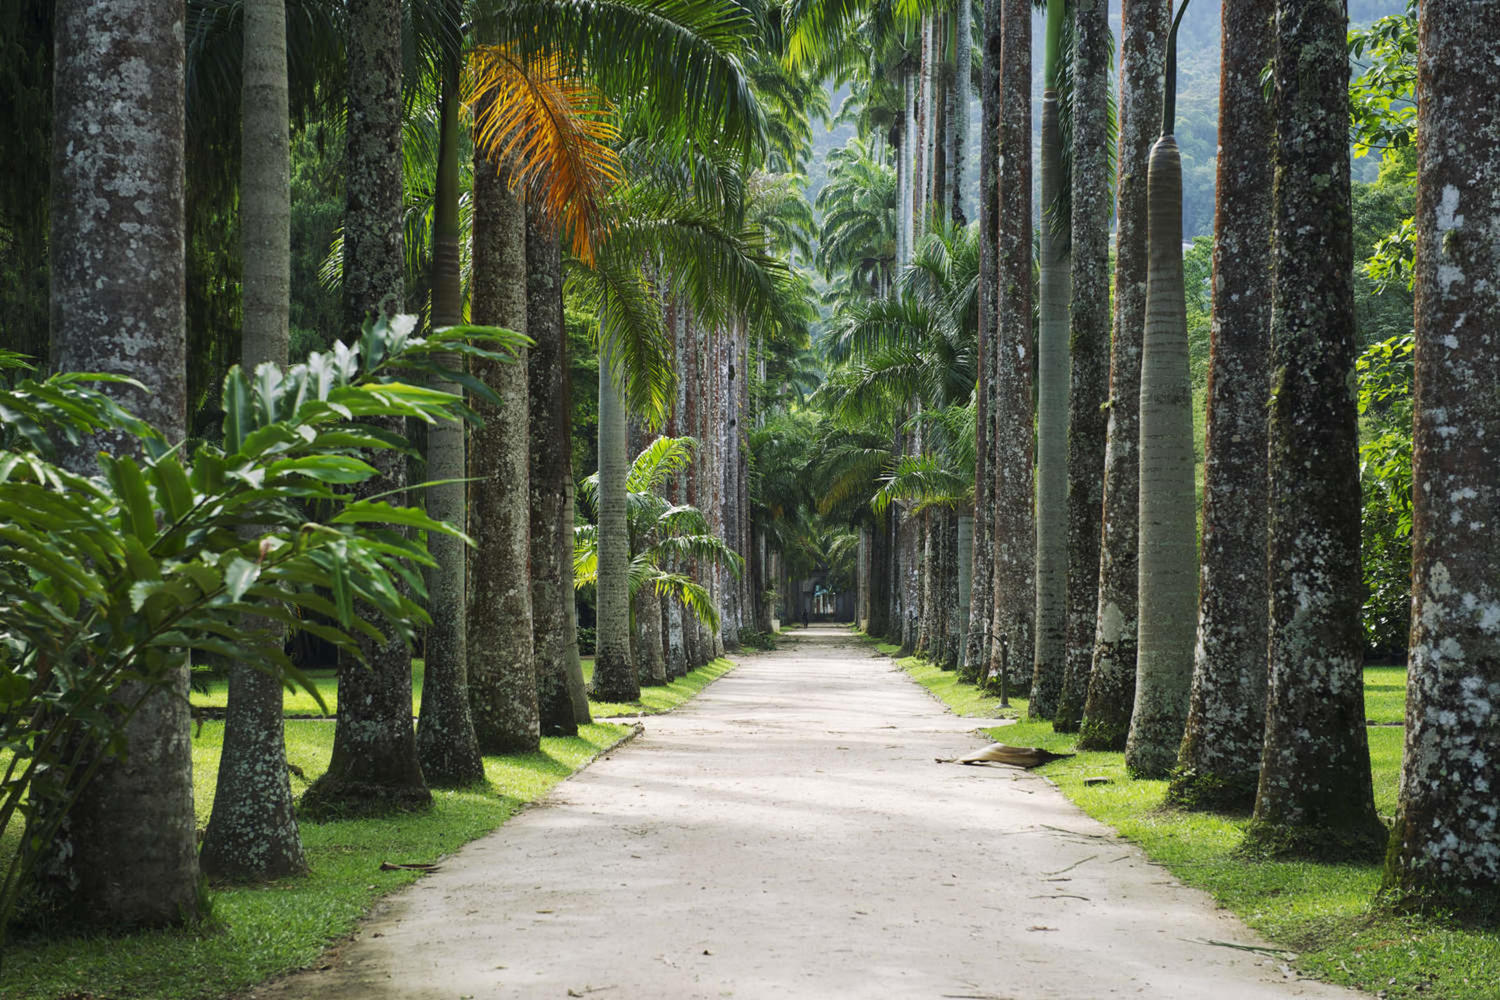 Avenue of royal palm trees at Rio's Jardim Botanico